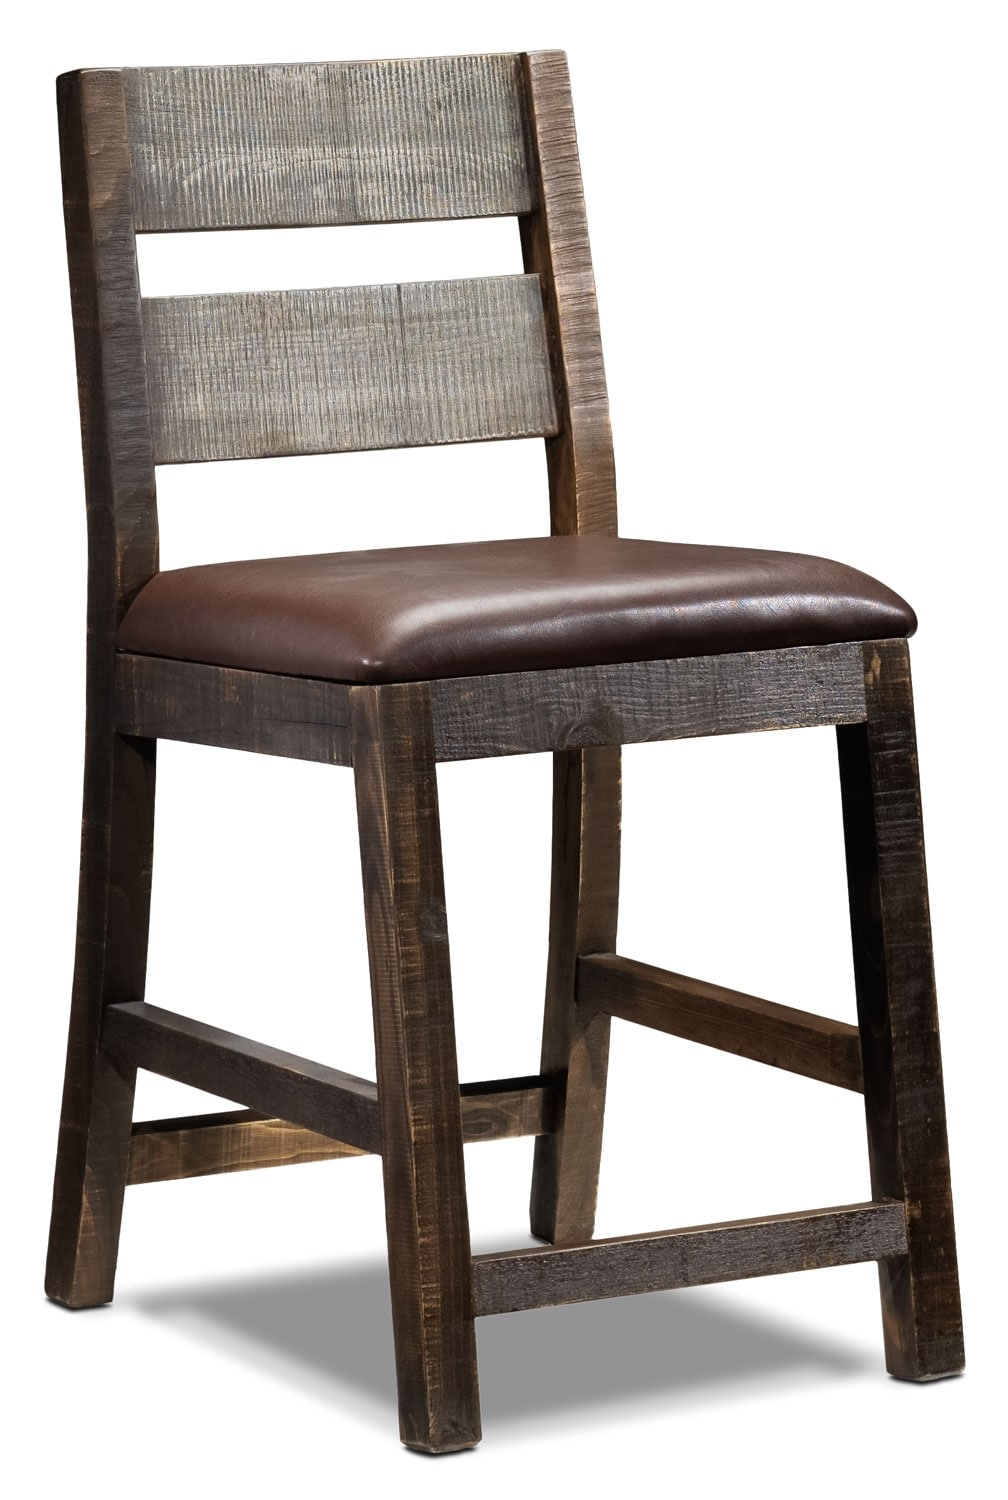 Allison Pine Pub Chair